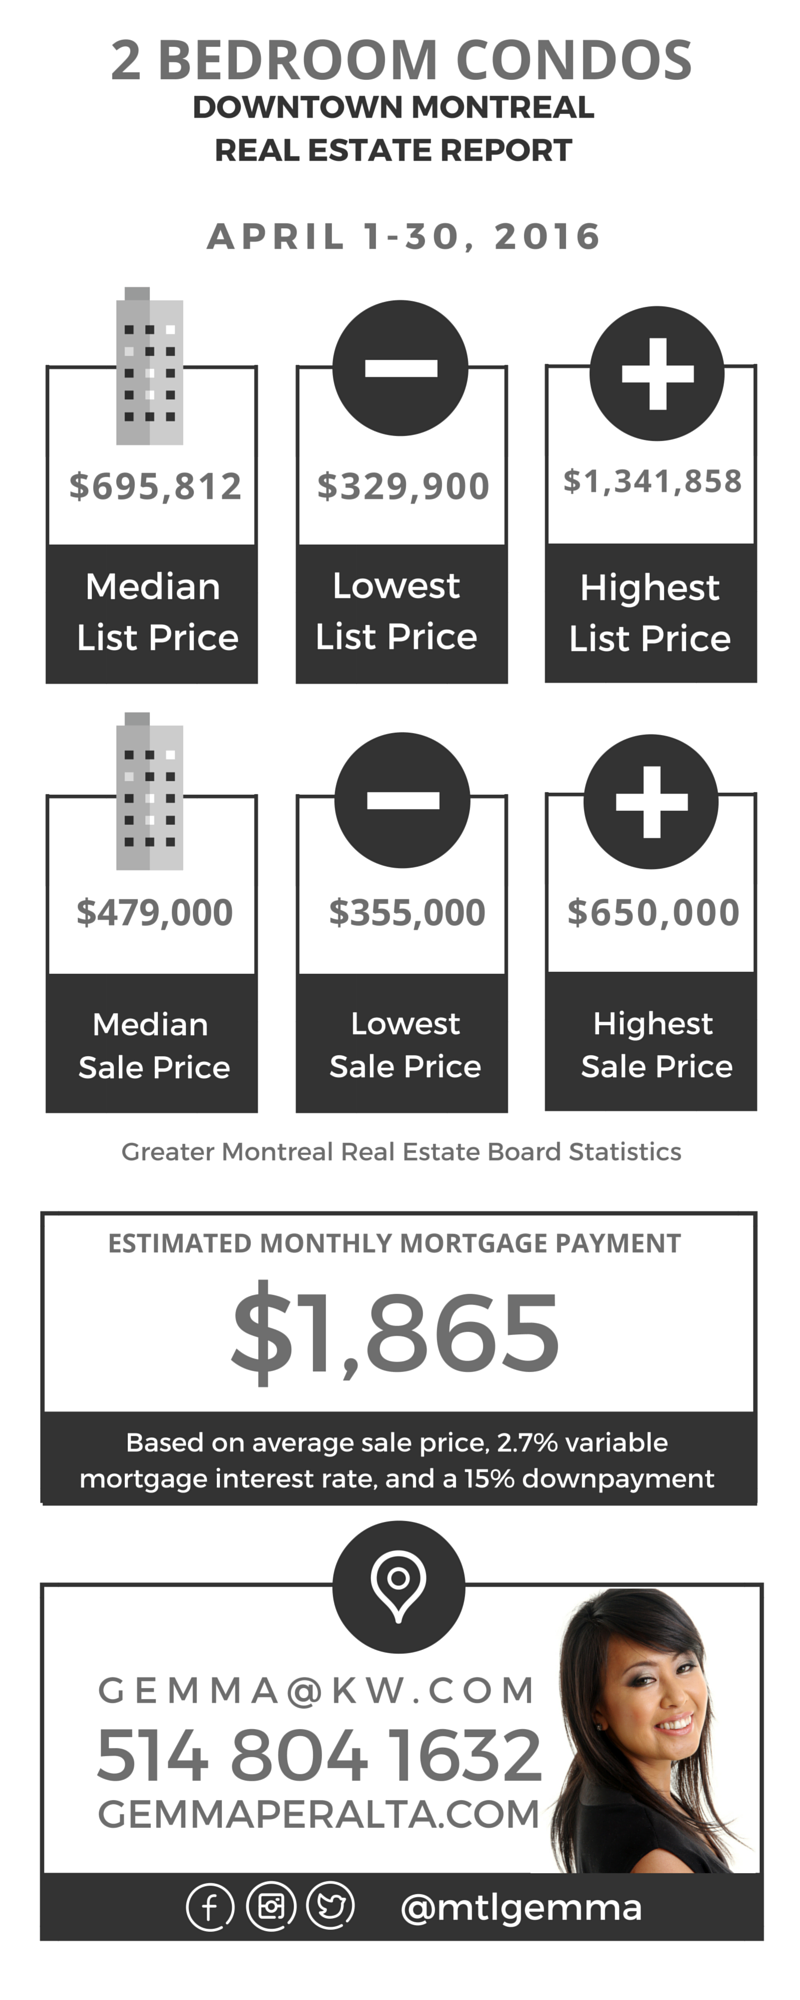 Downtown Montreal Real Estate Report April 2016 03